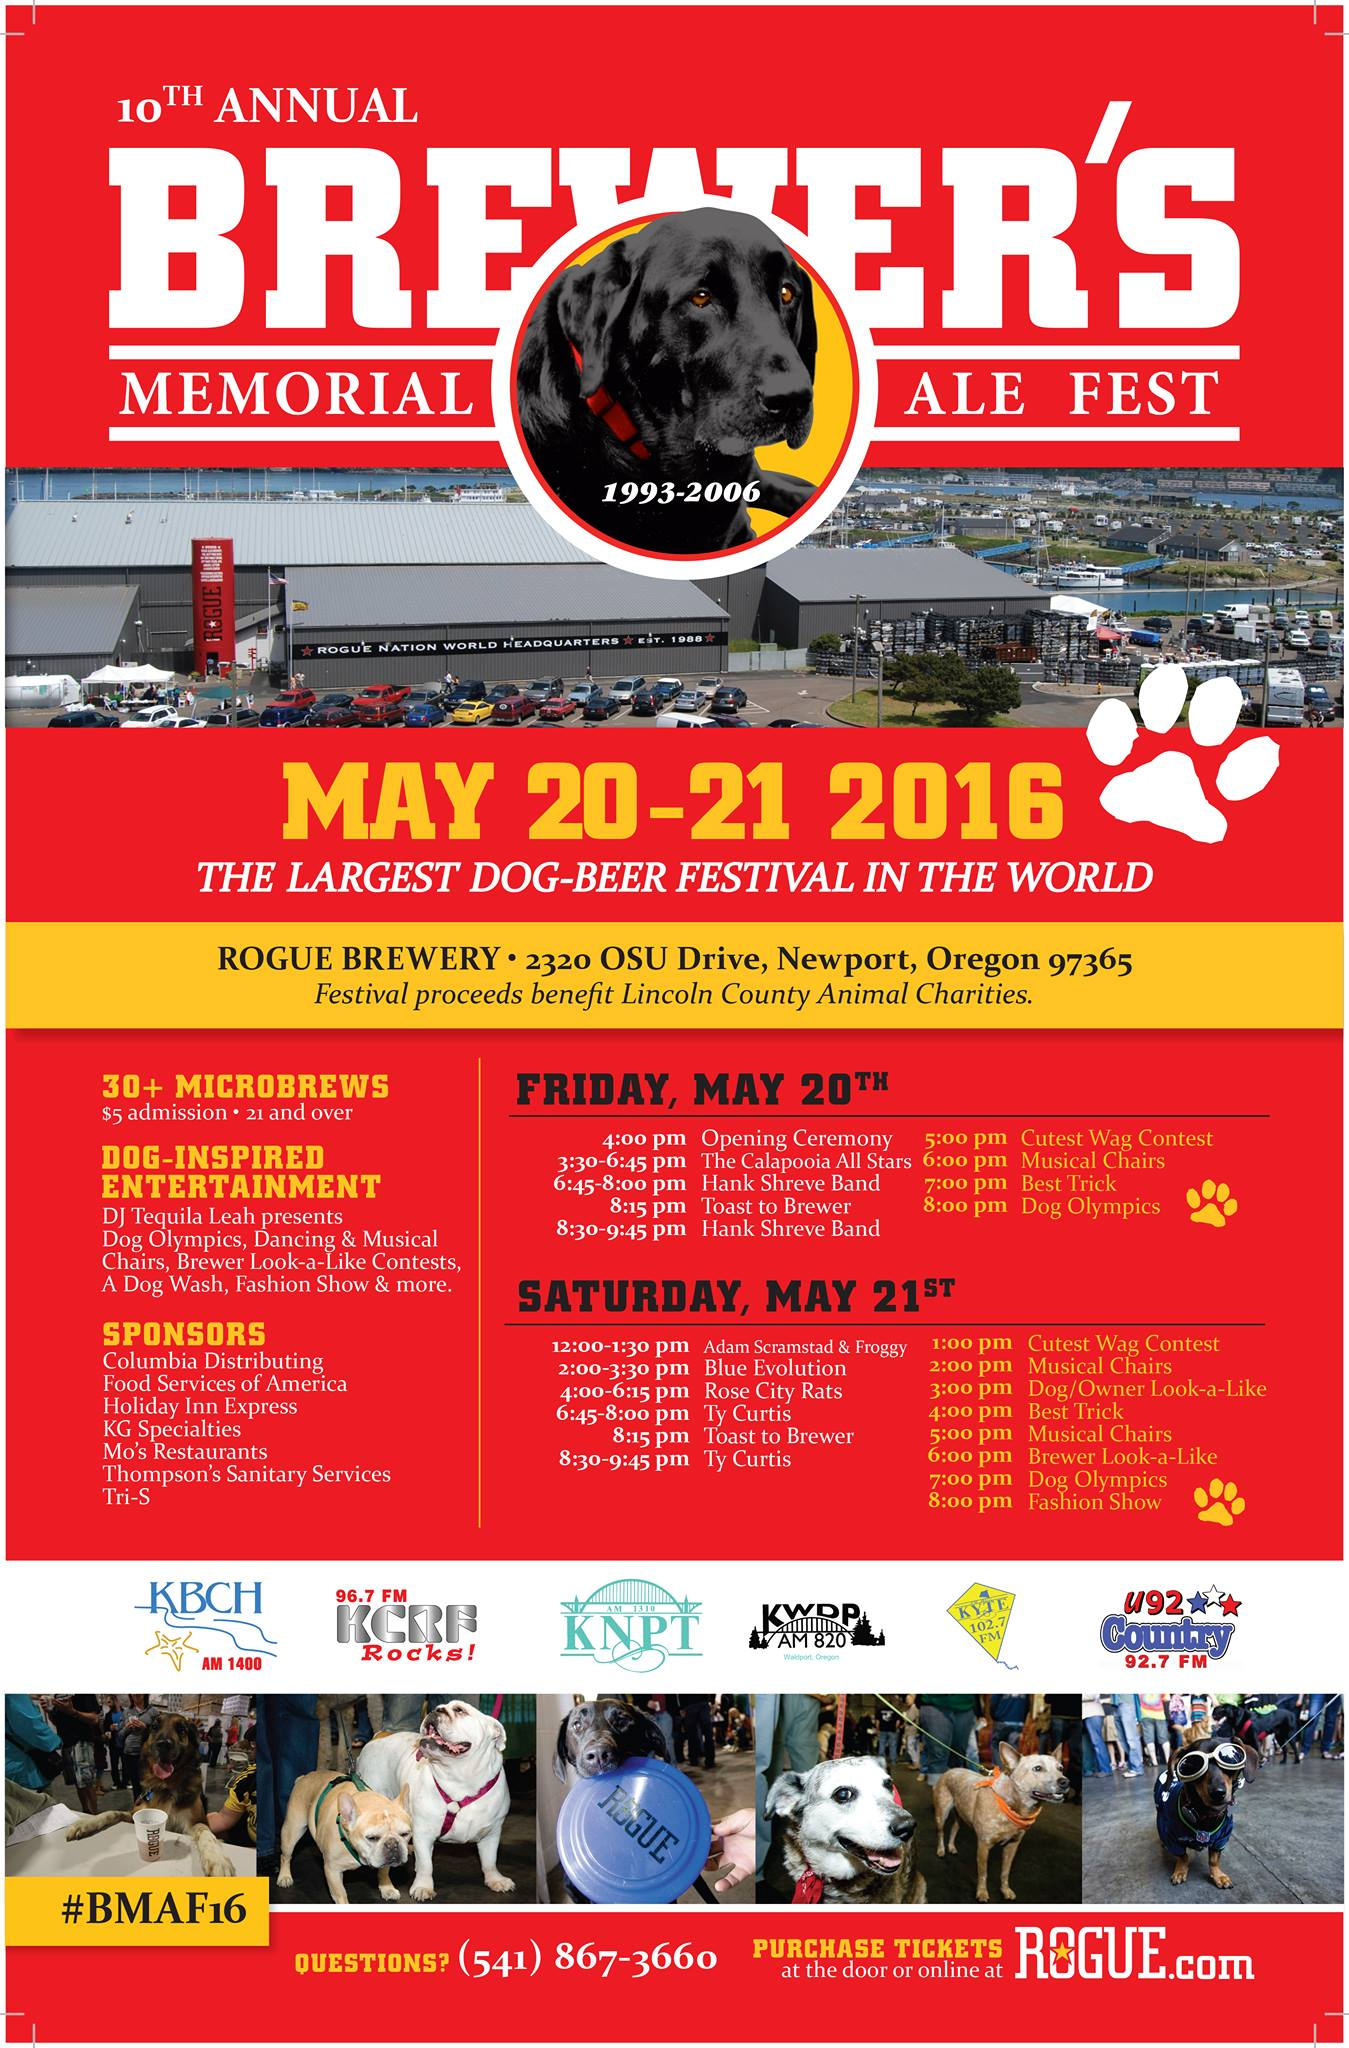 10th Annual Brewer's Memorial Ale Fest - 2016.png